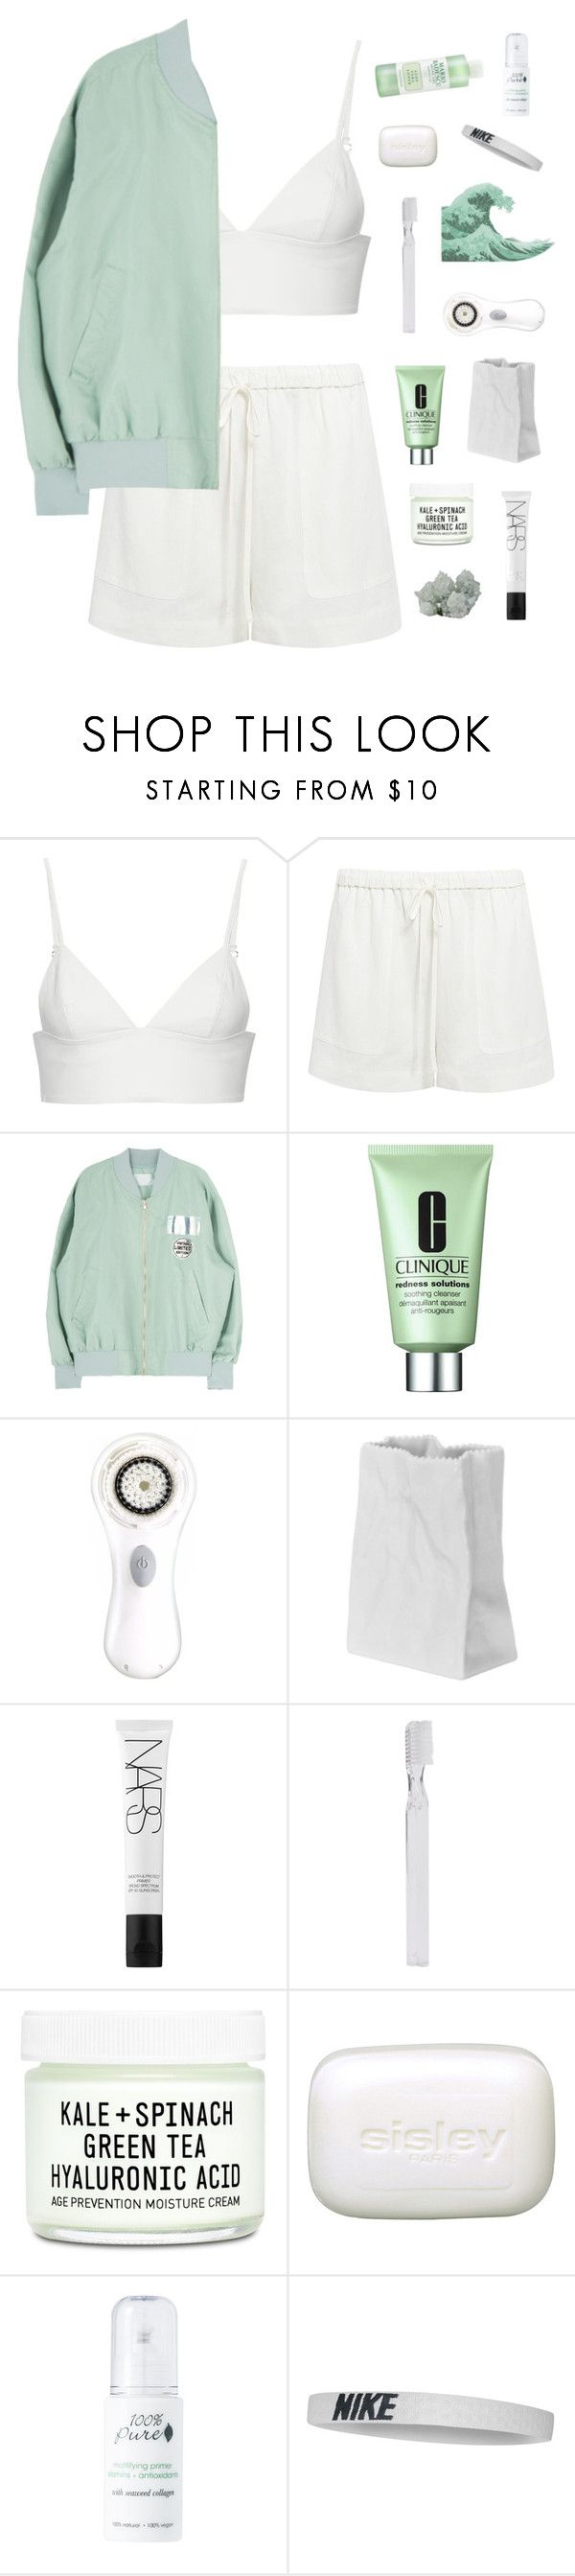 """mint"" by starry-nostalgia ❤ liked on Polyvore featuring T By Alexander Wang, TIBI, Clinique, Clarisonic, Rosenthal, NARS Cosmetics, Supersmile, Youth To The People, Sisley and 100% Pure"